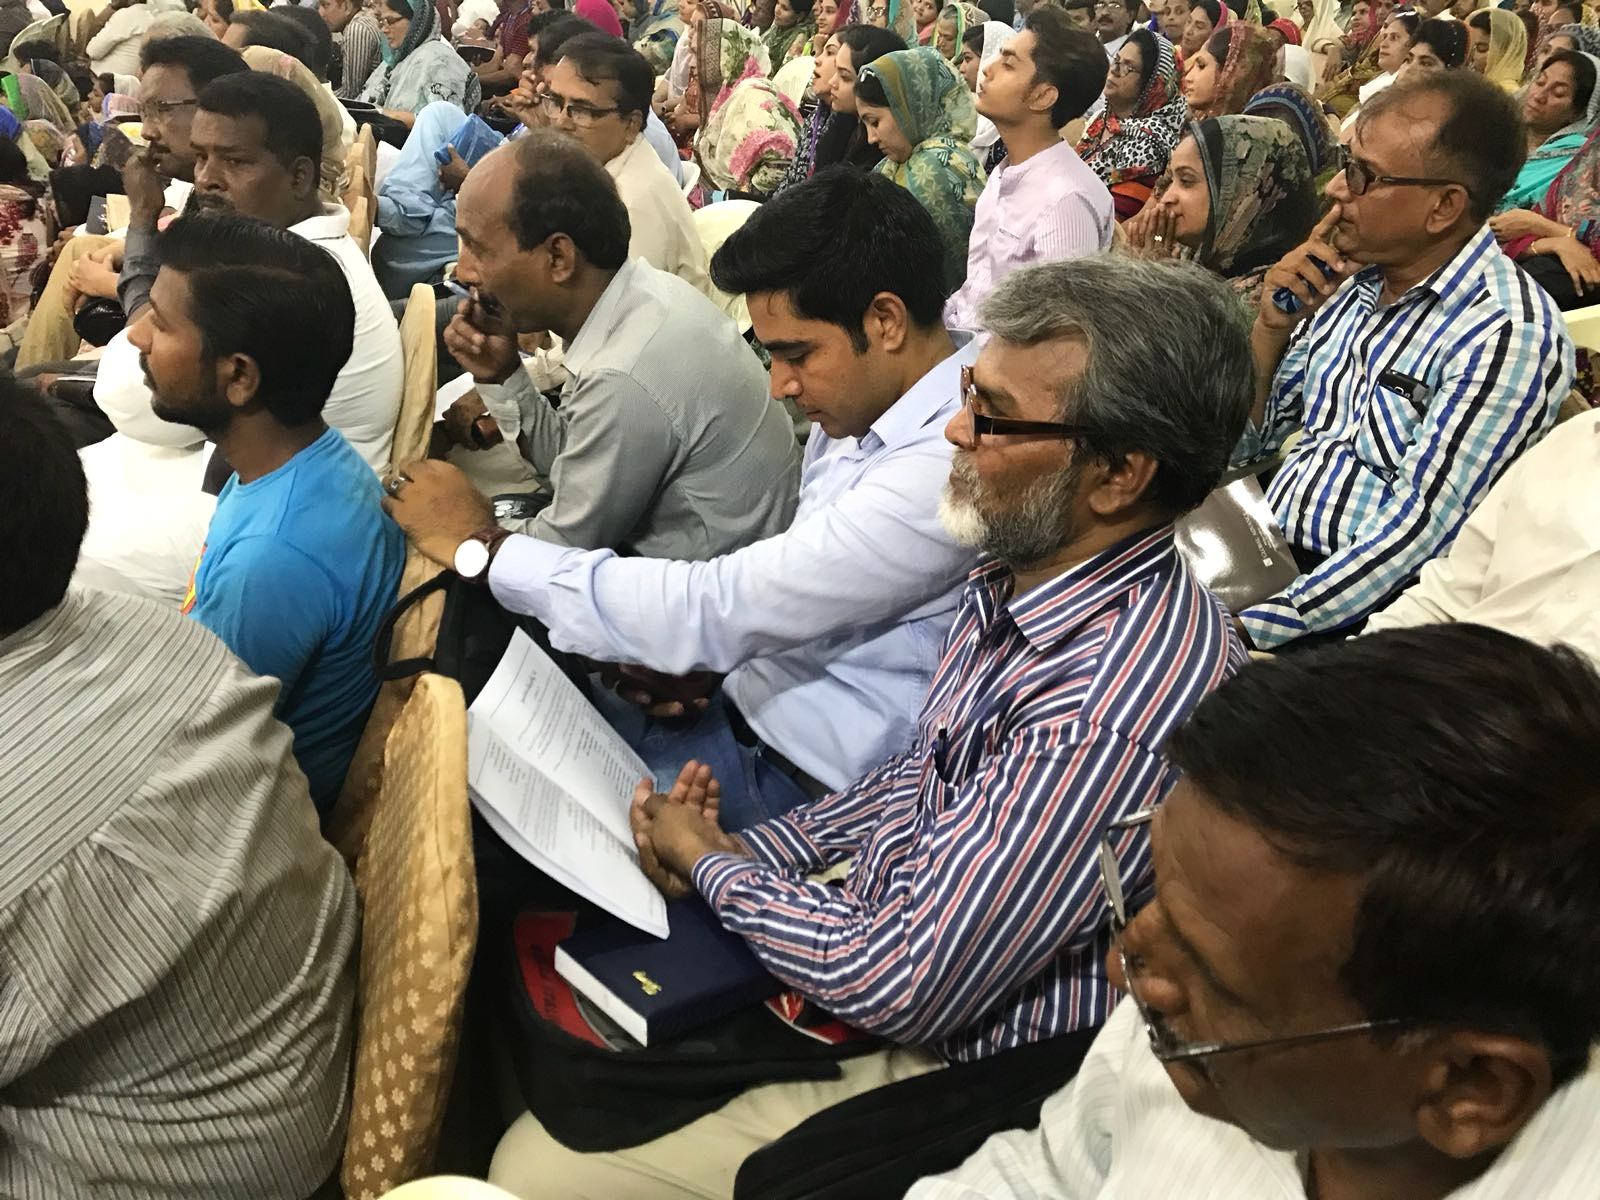 Over 600 leaders gathered for our Frontline Pastors Church Planting Conference in Karachi, Pakistan in May 2018